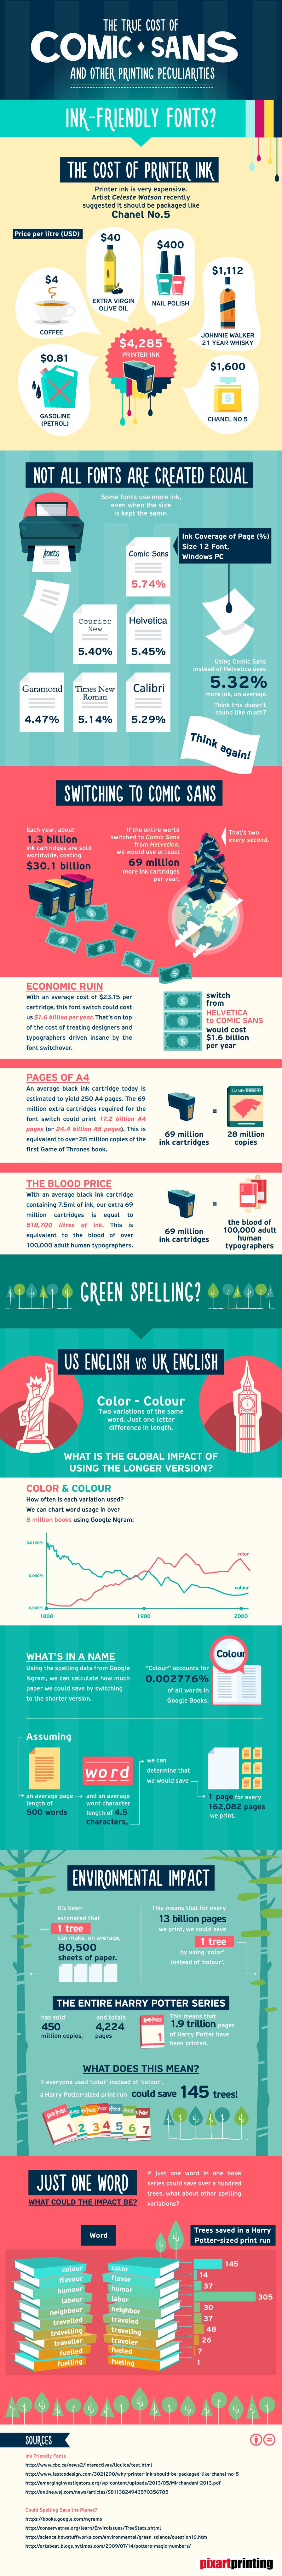 The Economic Consequences Of Comic Sans [INFOGRAPHIC]